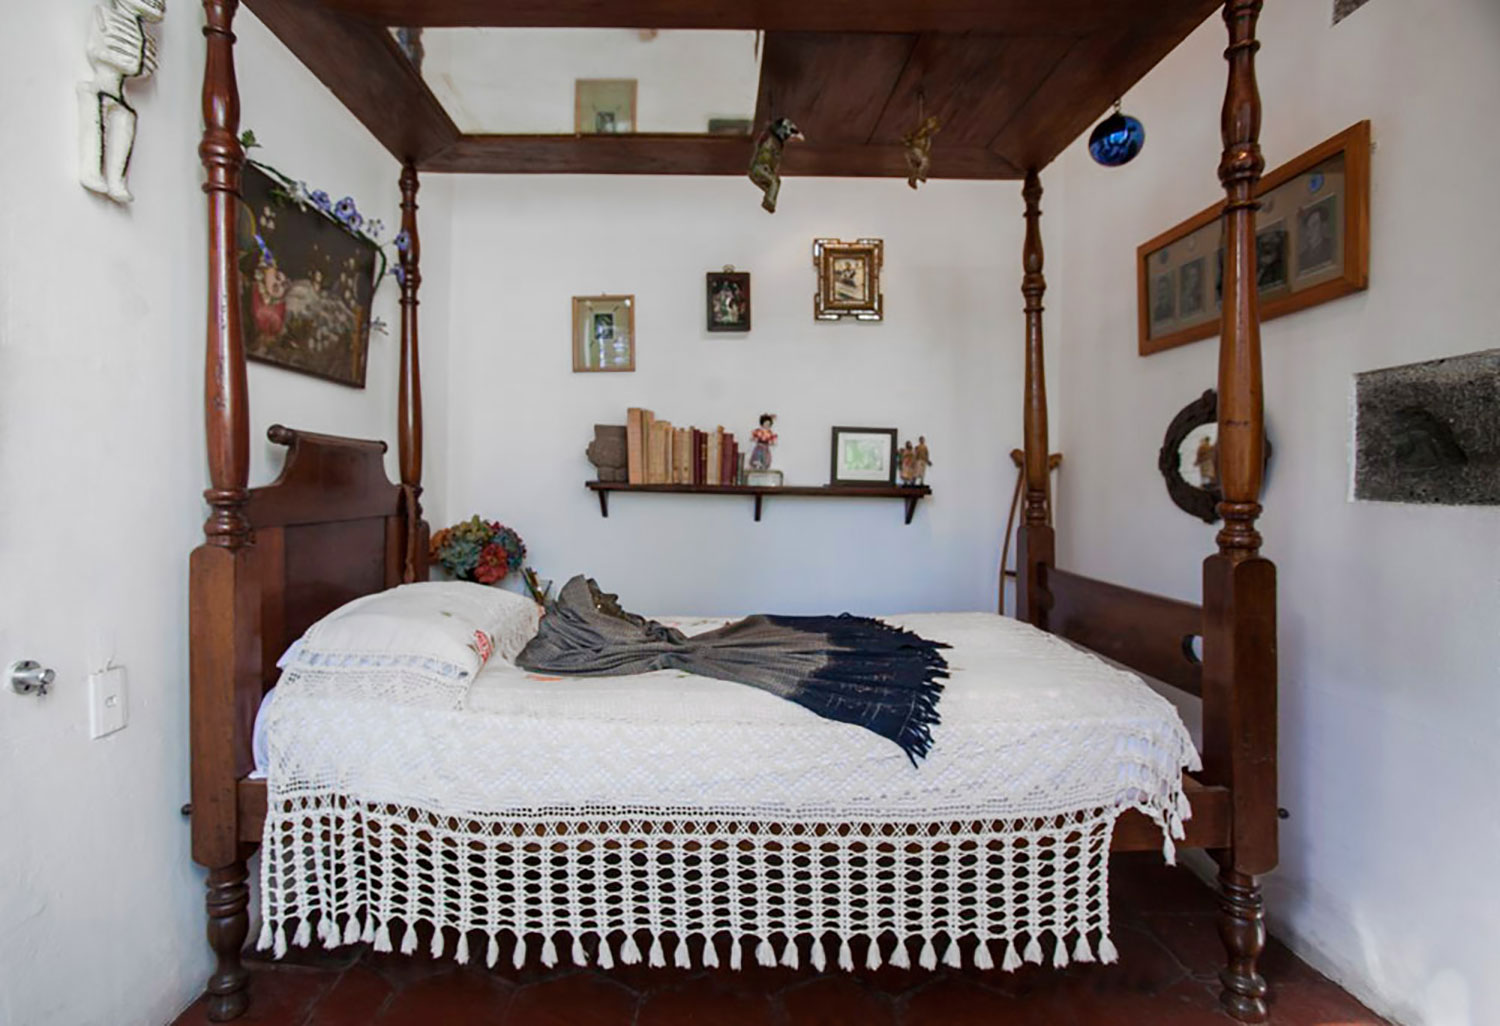 Frida's bed with the ceiling mirror.